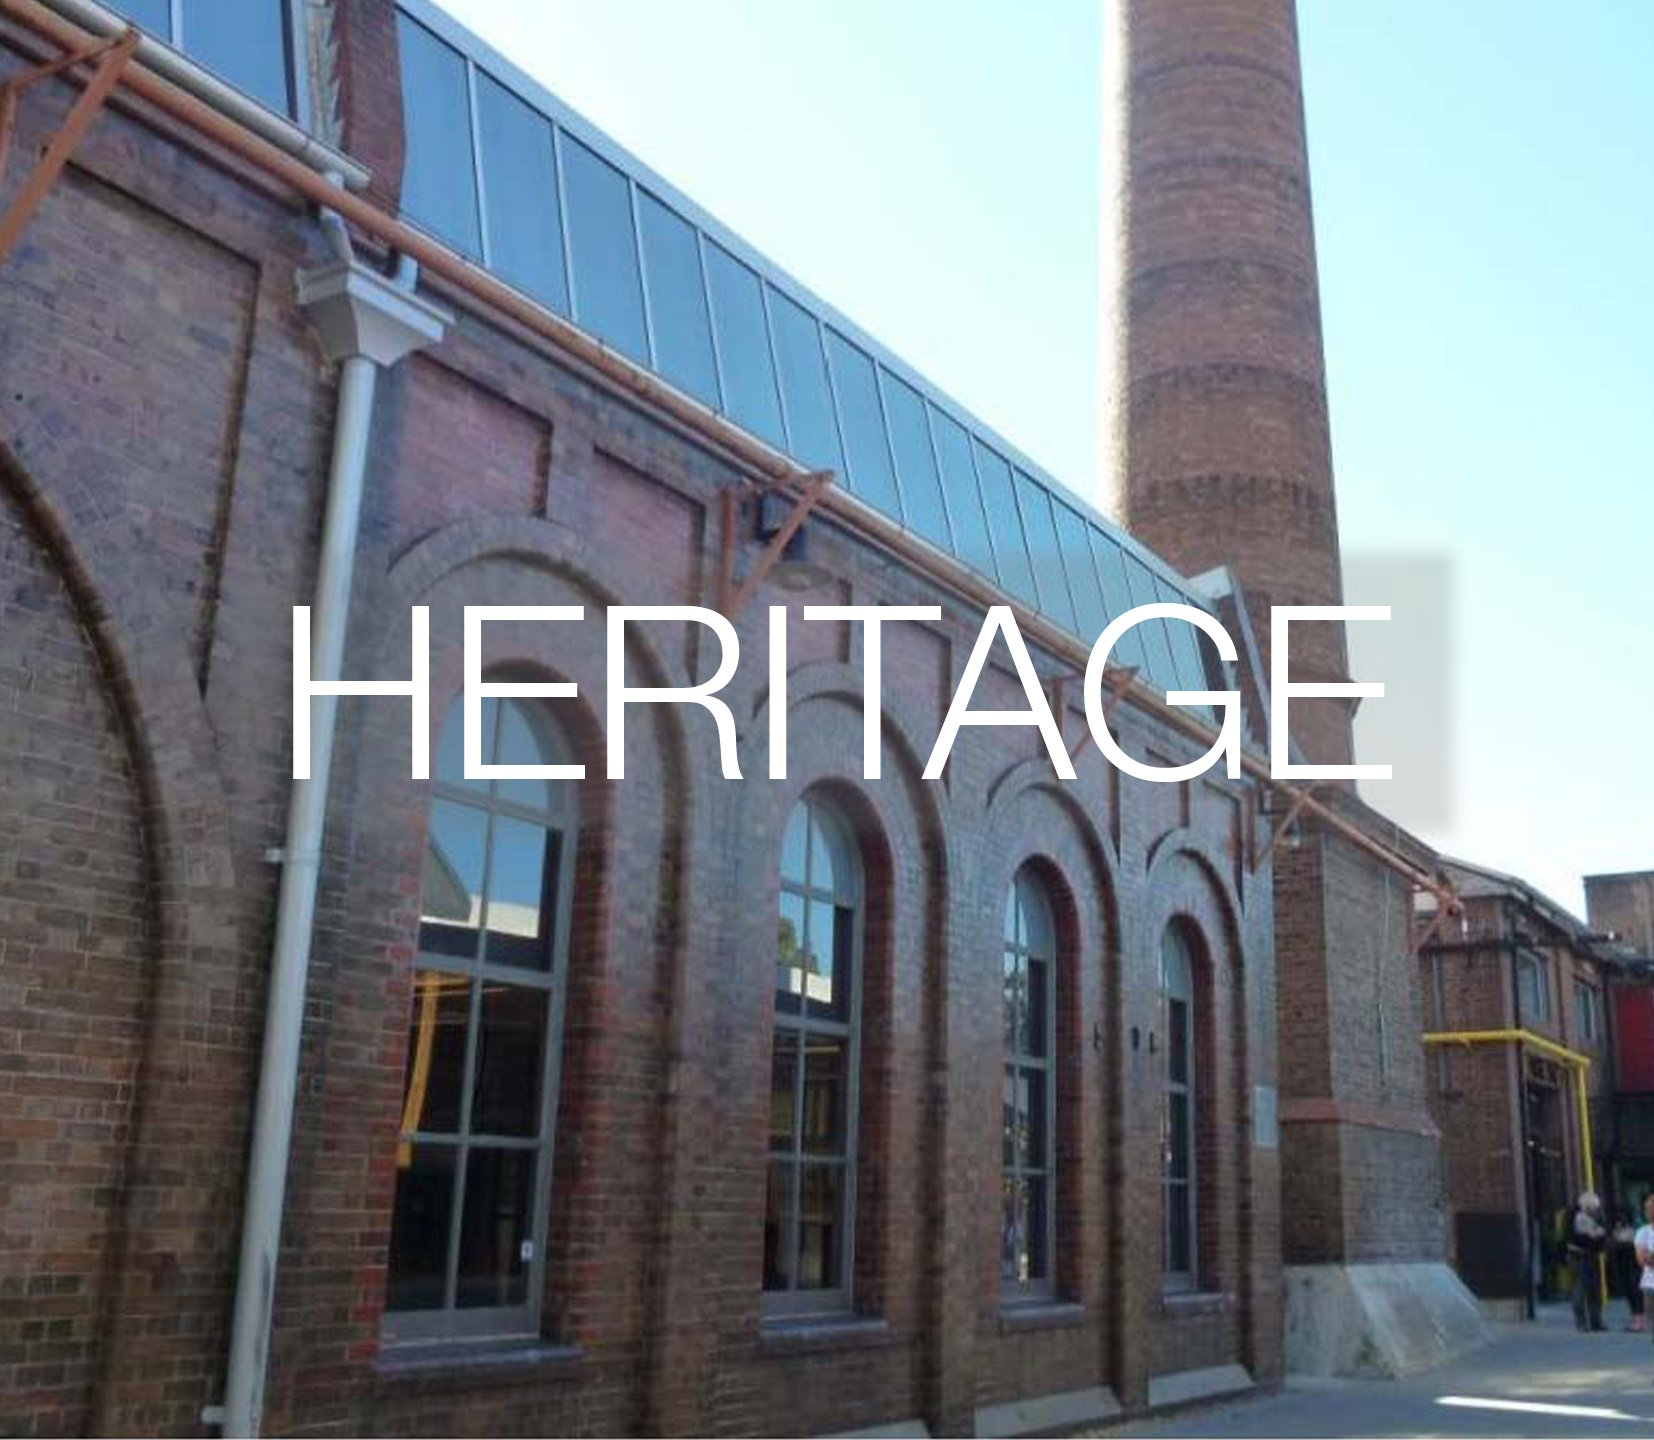 https://www.cityplan.com.au/heritage-projects/